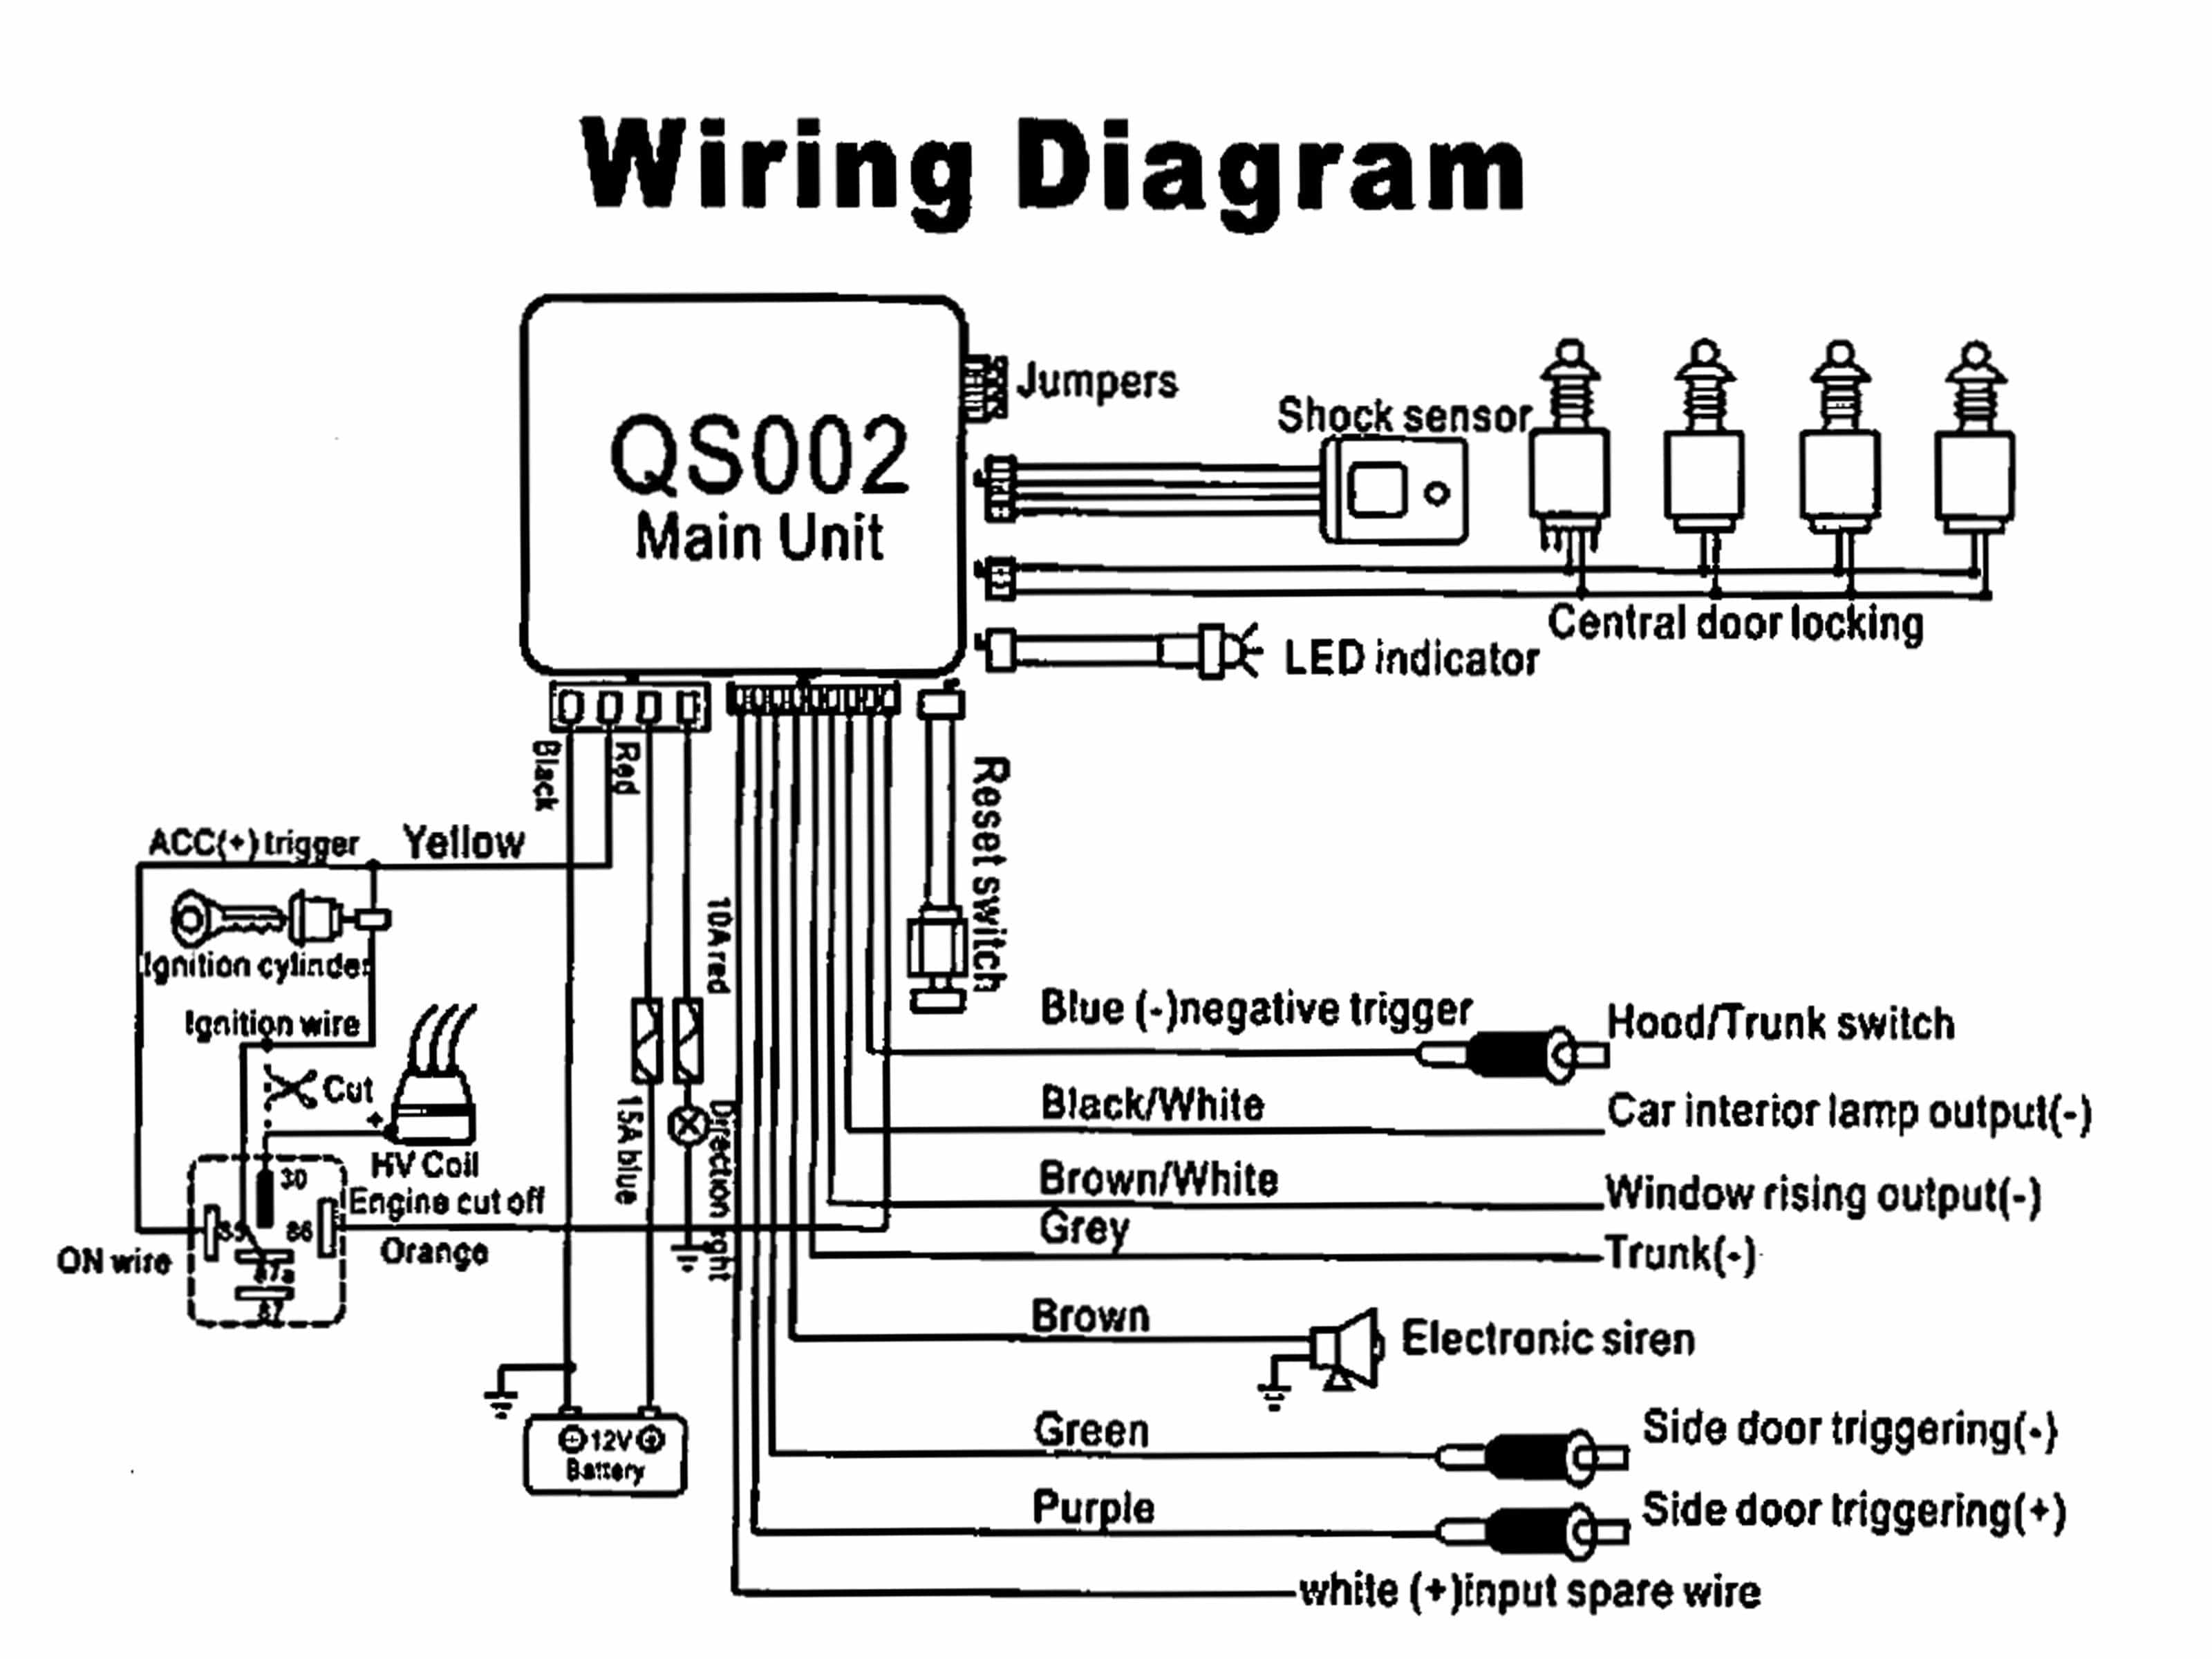 AlarmInstructions_7a98a2bc d189 4c5b 99b3 c774abdbef28 clarion cmd5 wiring diagram wiring diagram shrutiradio  at soozxer.org